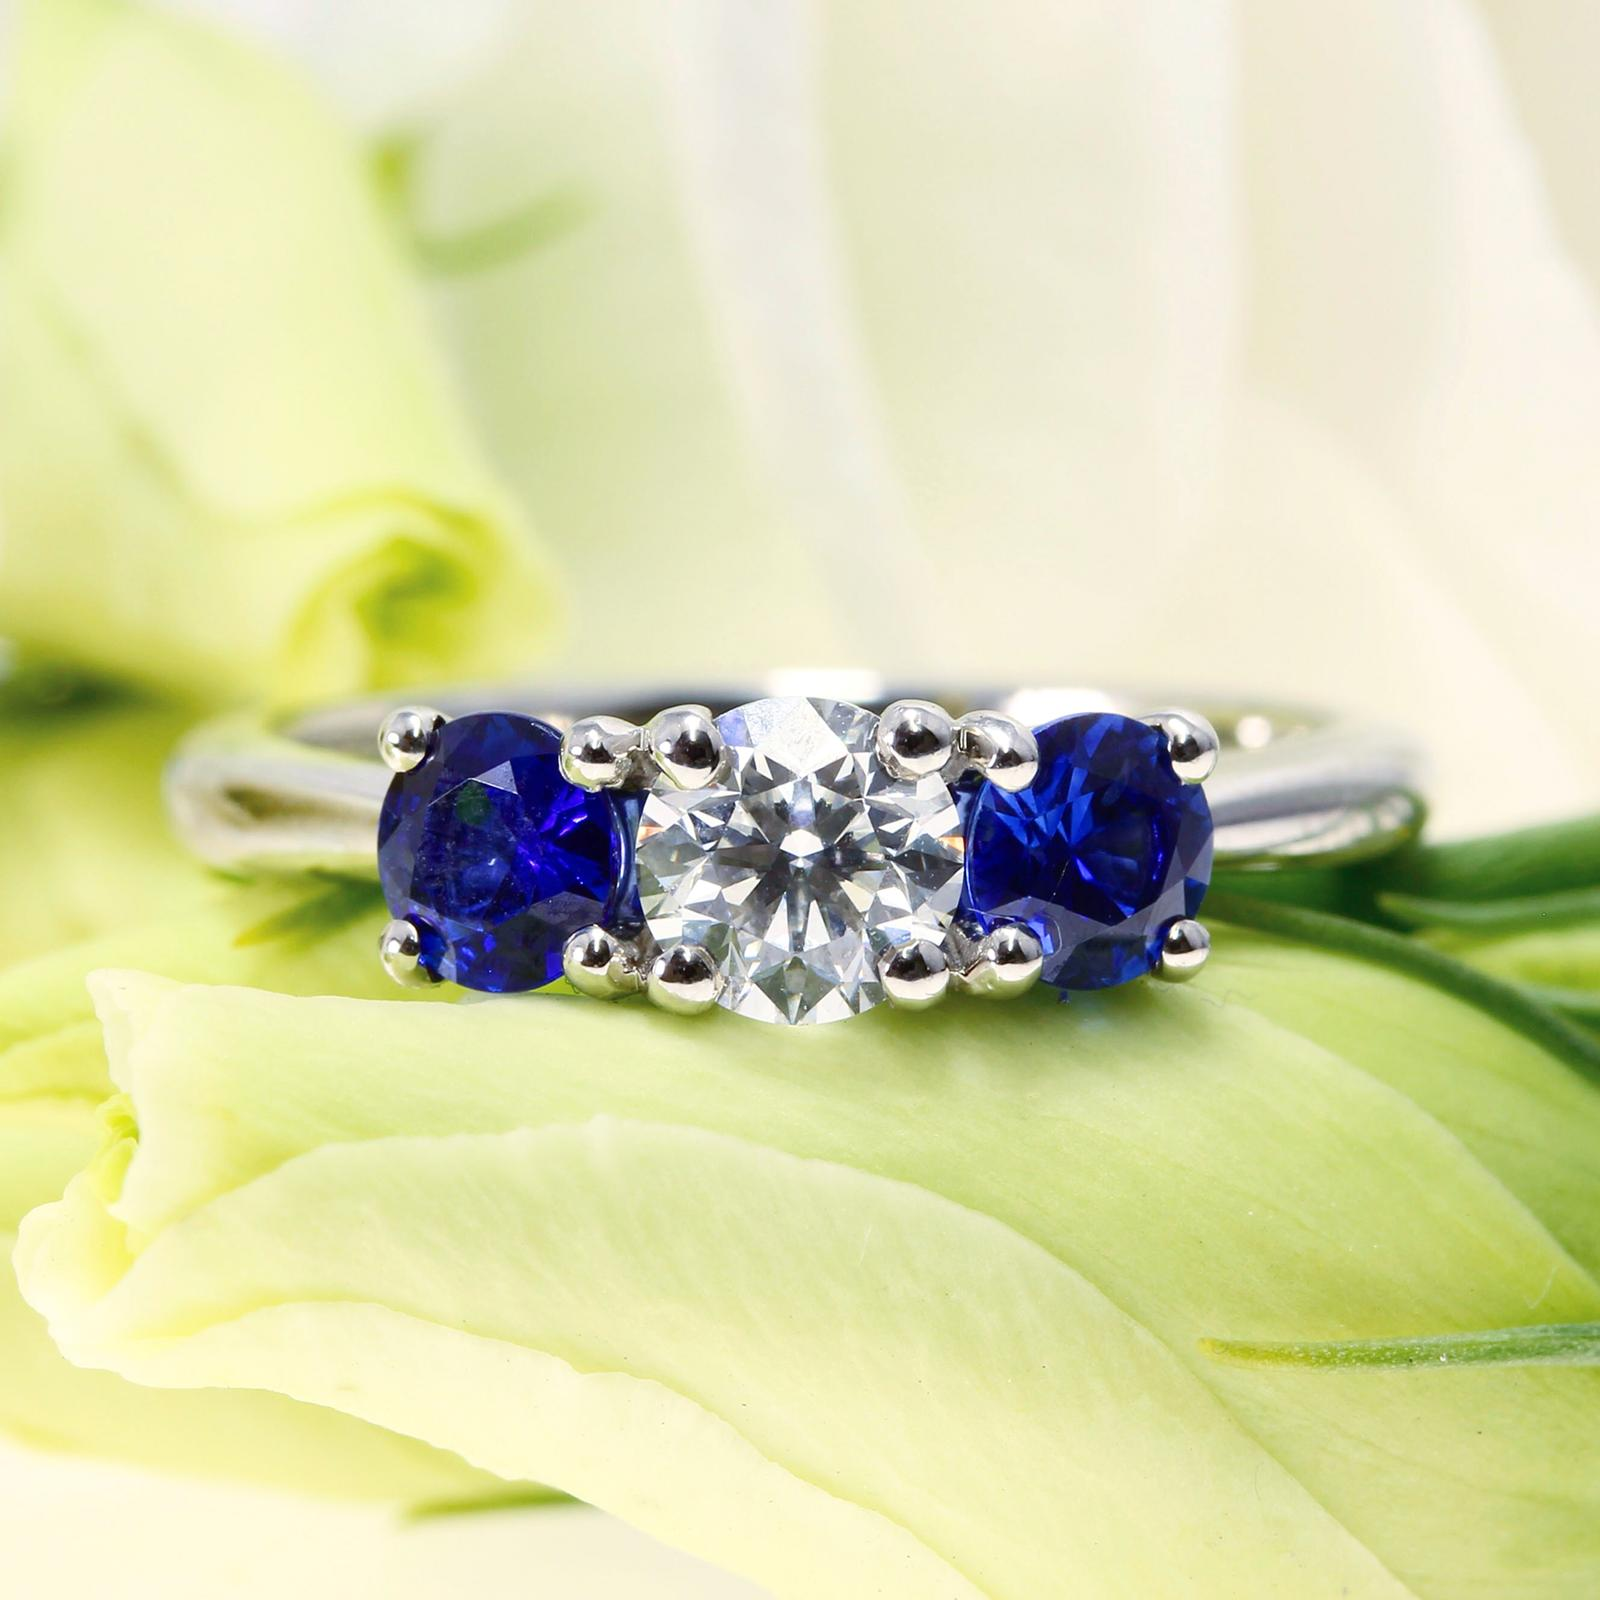 A Bespoke Trilogy Brilliant Cut Diamond & Sapphire Engagement Ring handcrafted in Hatton Garden, London.